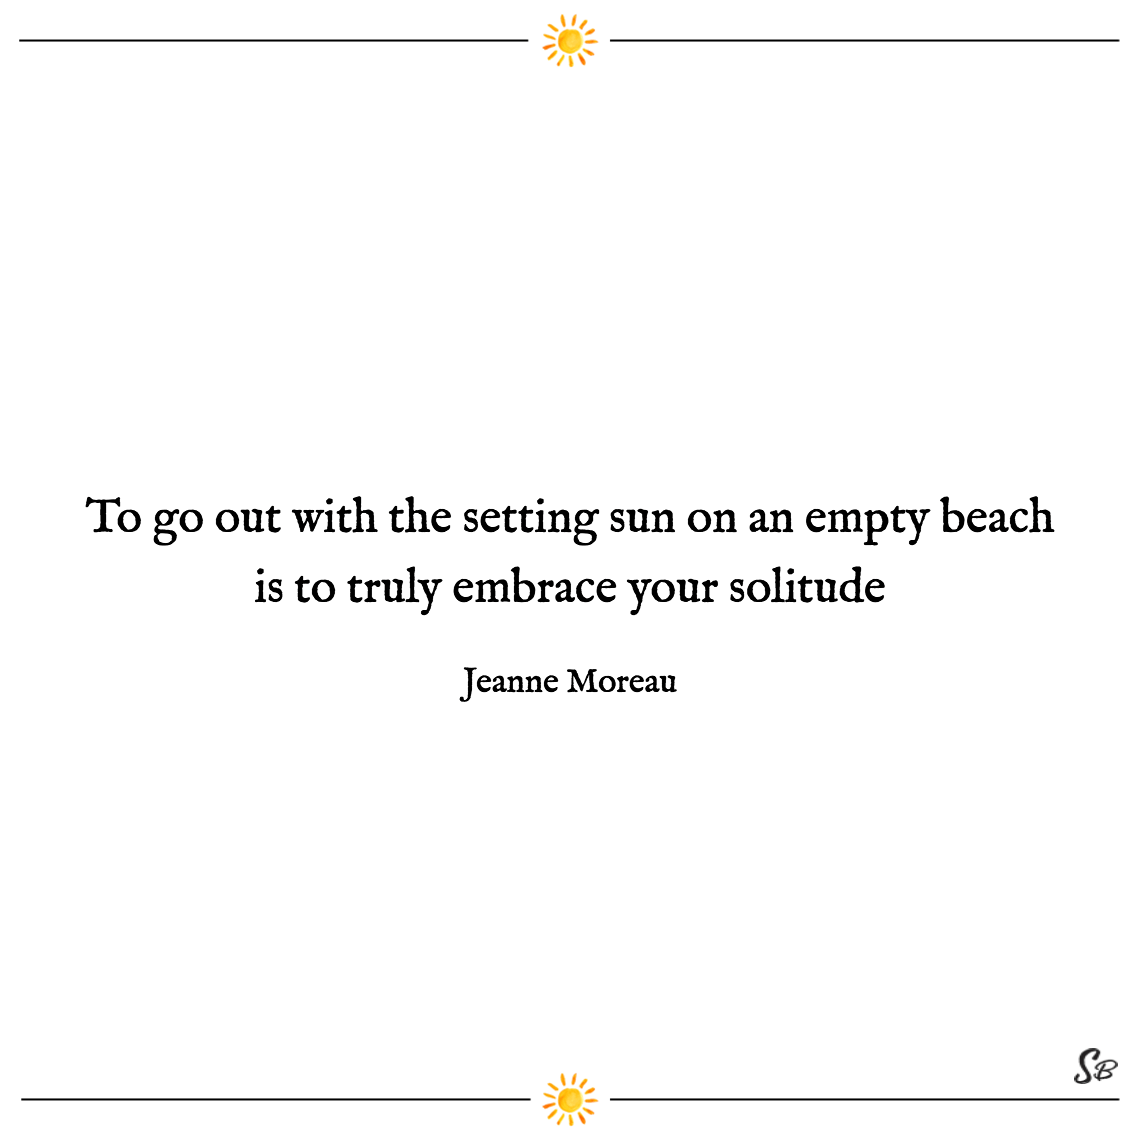 To go out with the setting sun on an empty beach is to truly embrace your solitude jeanne moreau